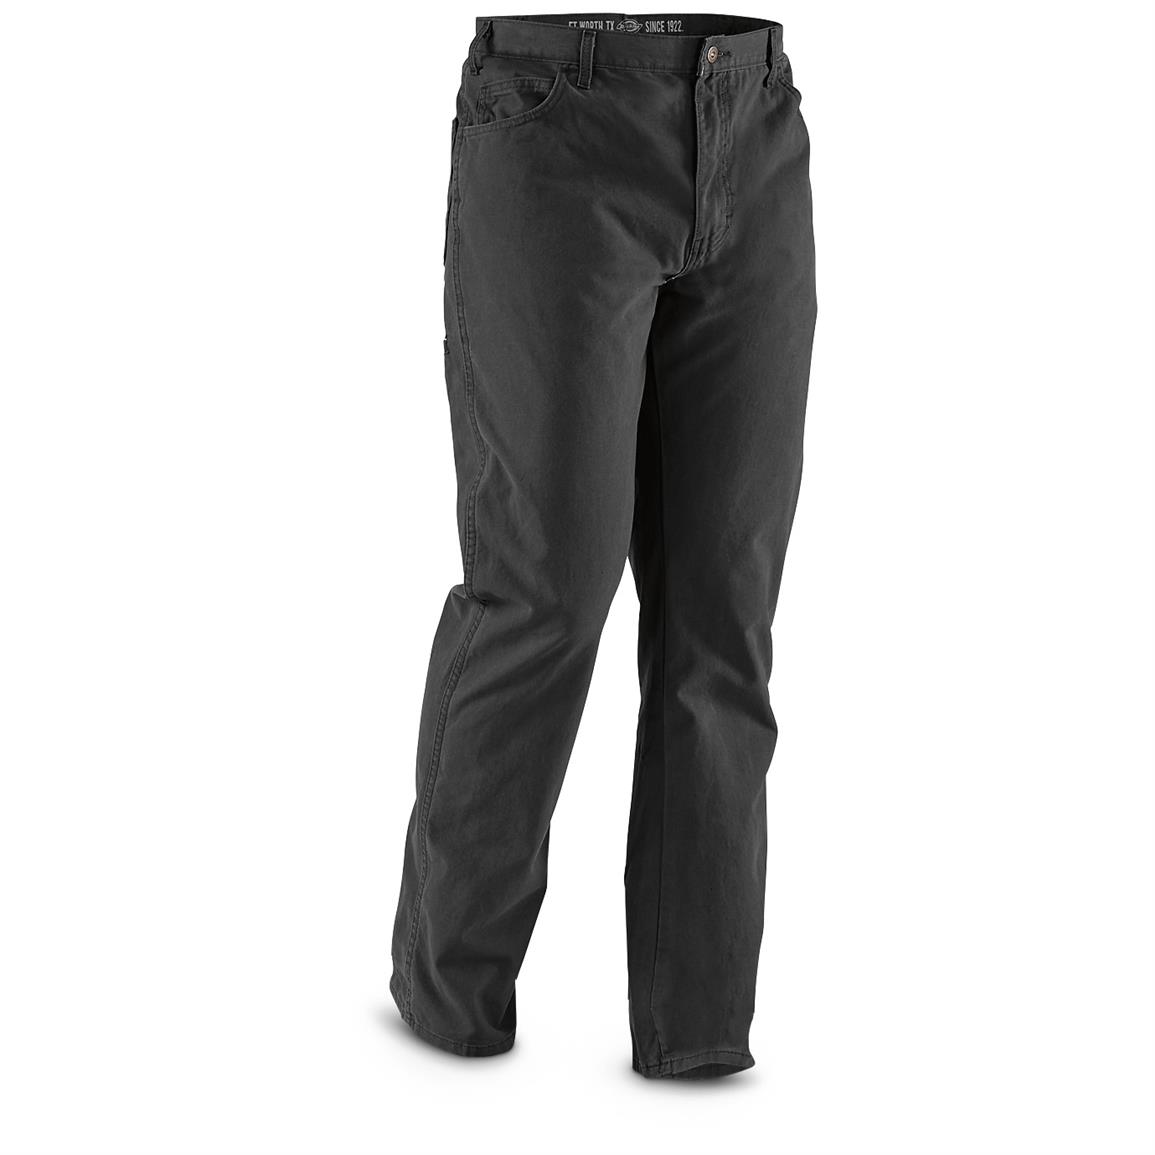 Dickies Men's 6-pocket Pants, Irregulars, Black